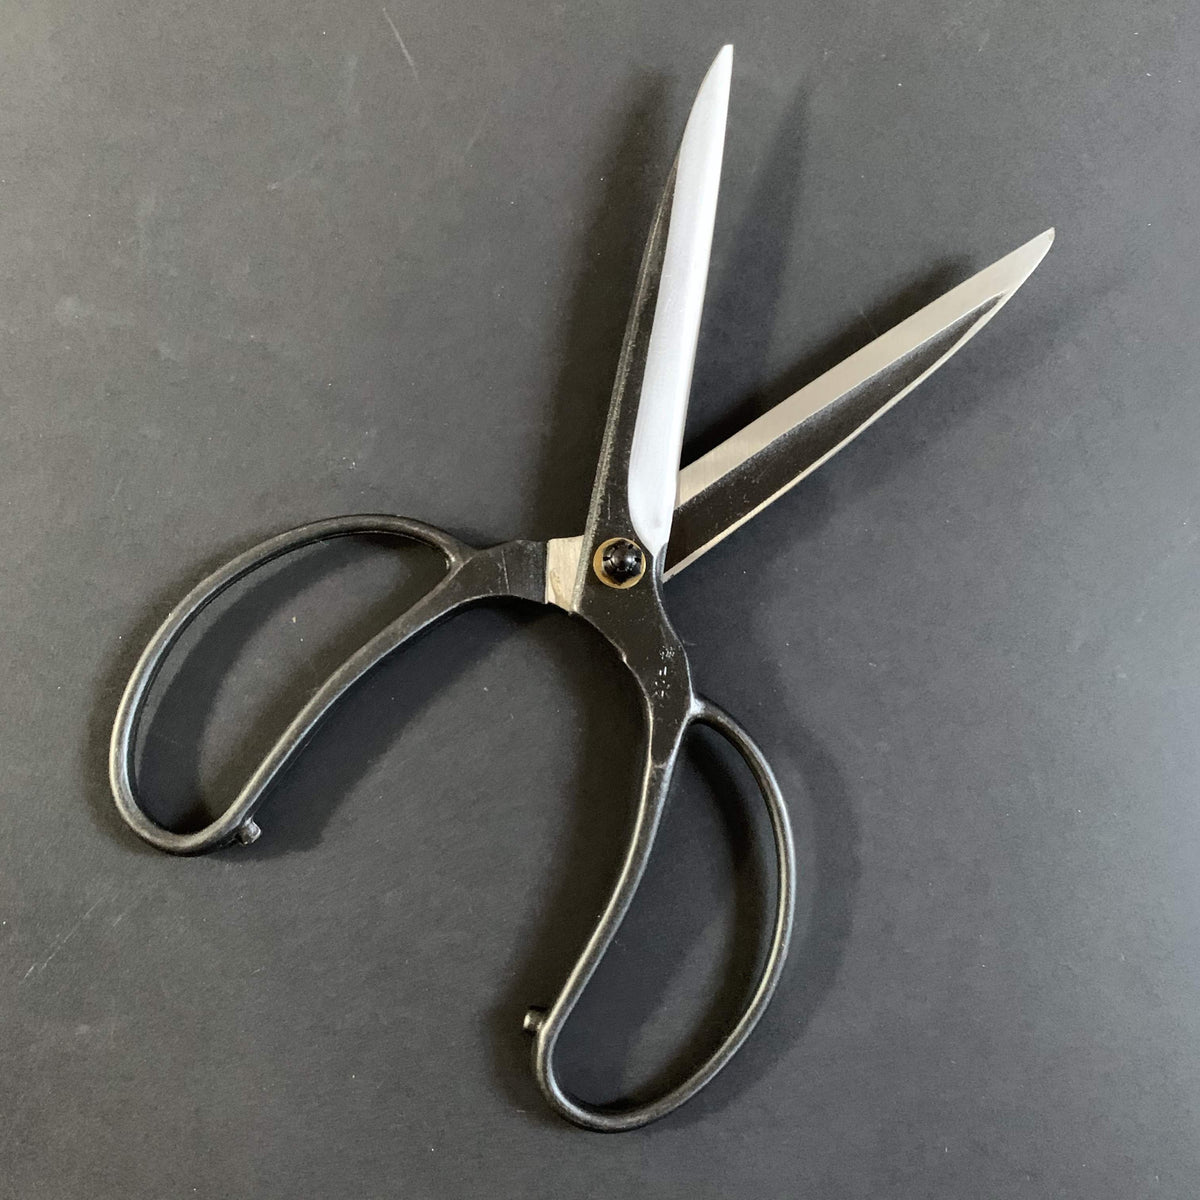 Japanese Aogami steel shears